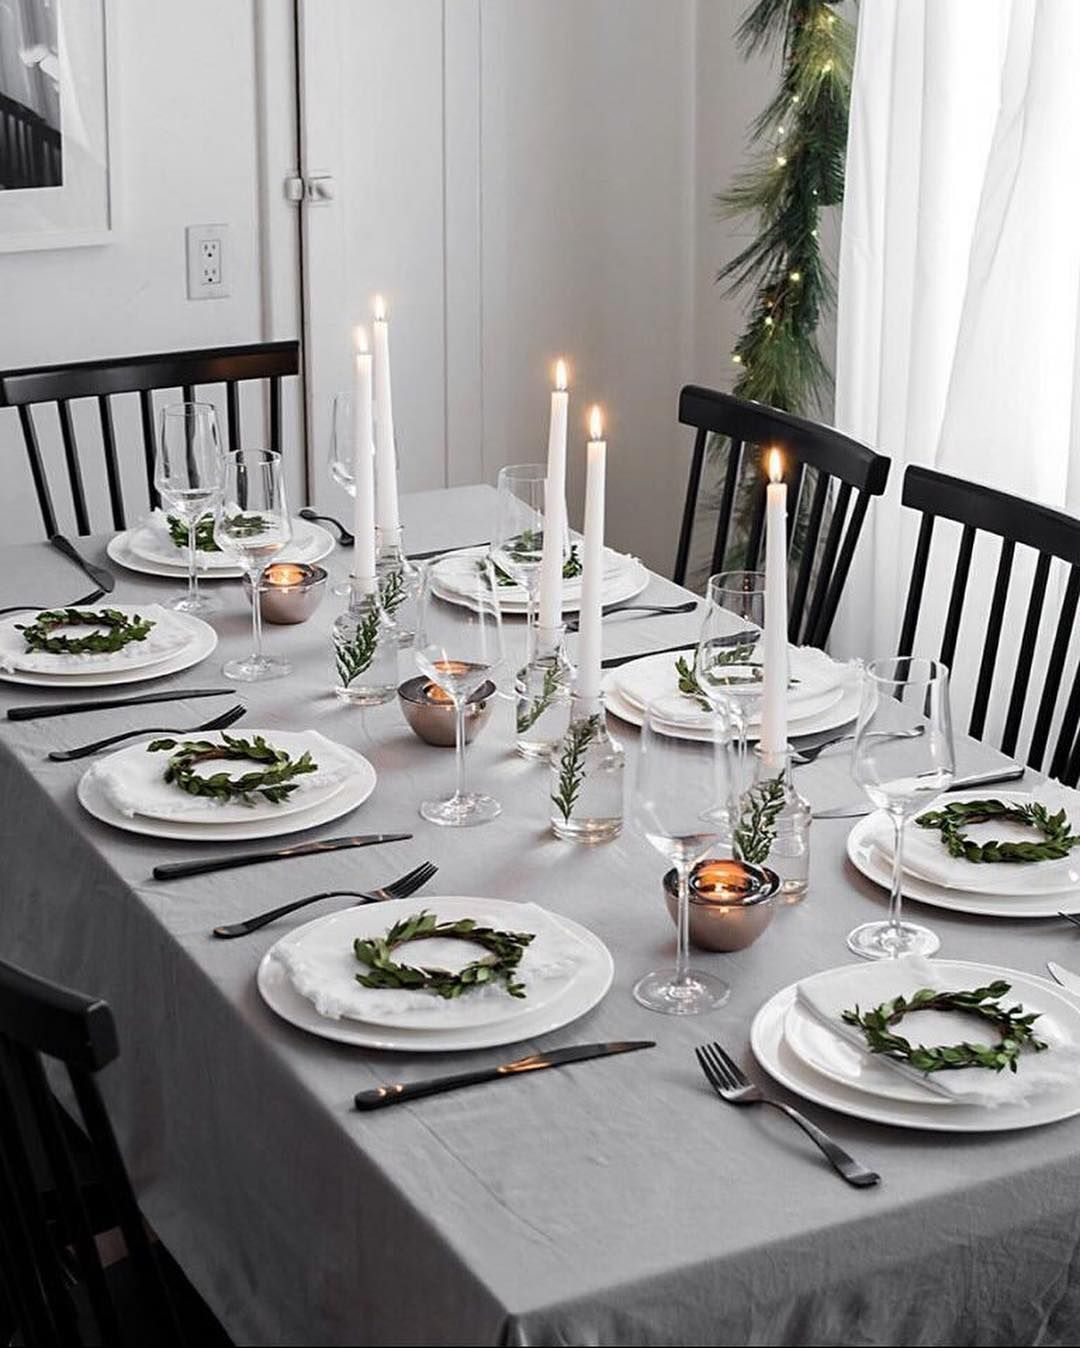 Bed Bath Beyond On Instagram This Modern Christmas Tablescape By Homeyohmy Is The P Christmas Dinner Table Holiday Table Decorations Christmas Party Table